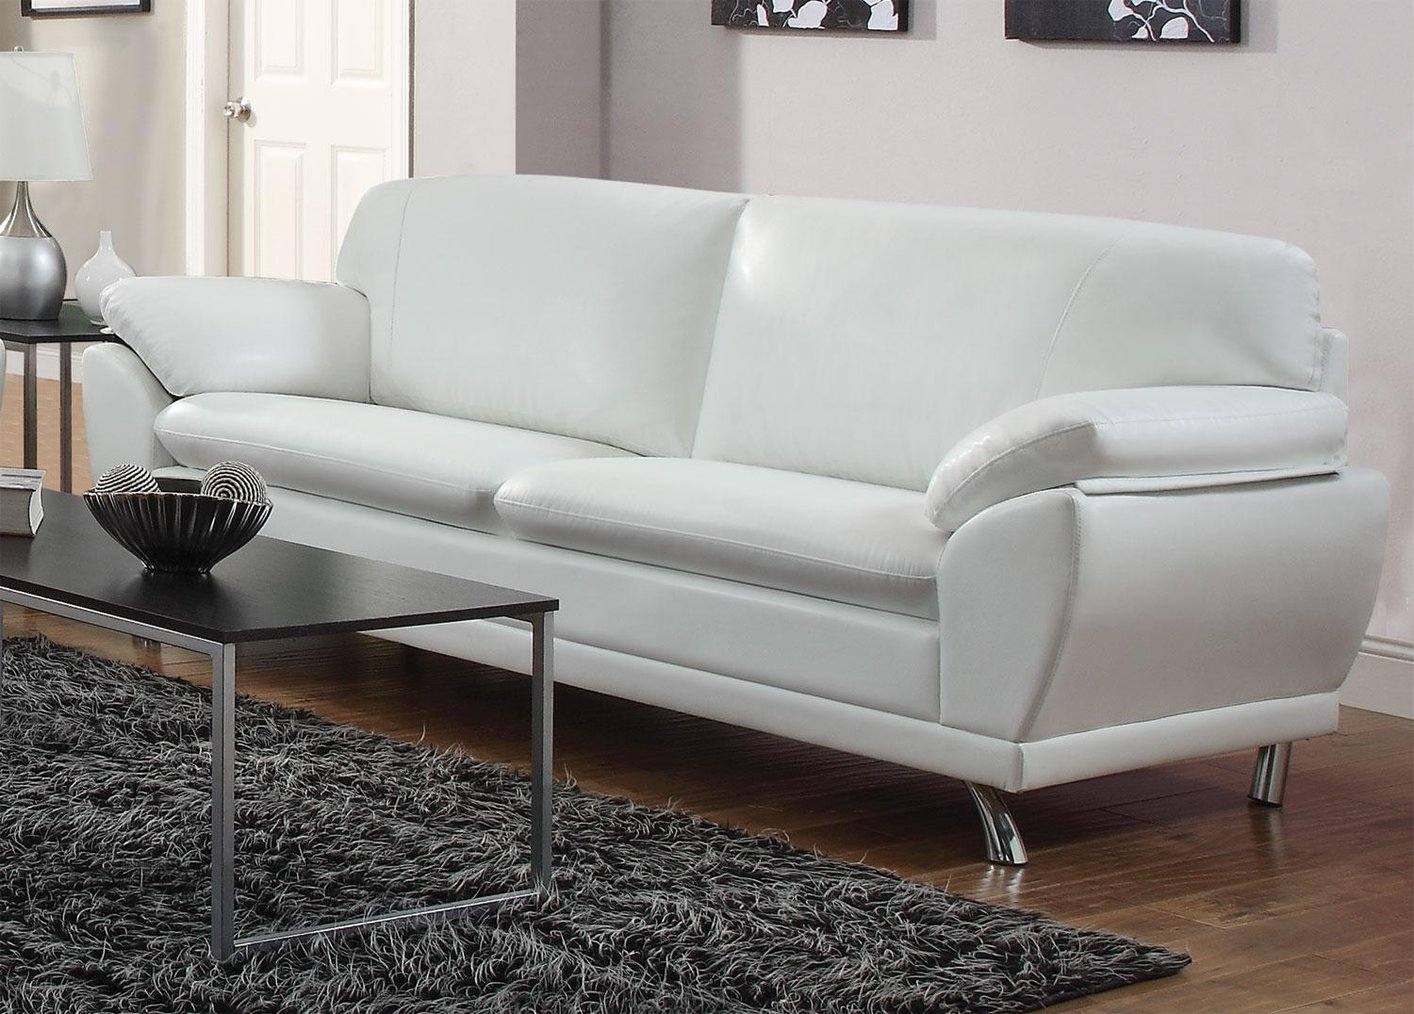 How to keep your white leather sofa clean